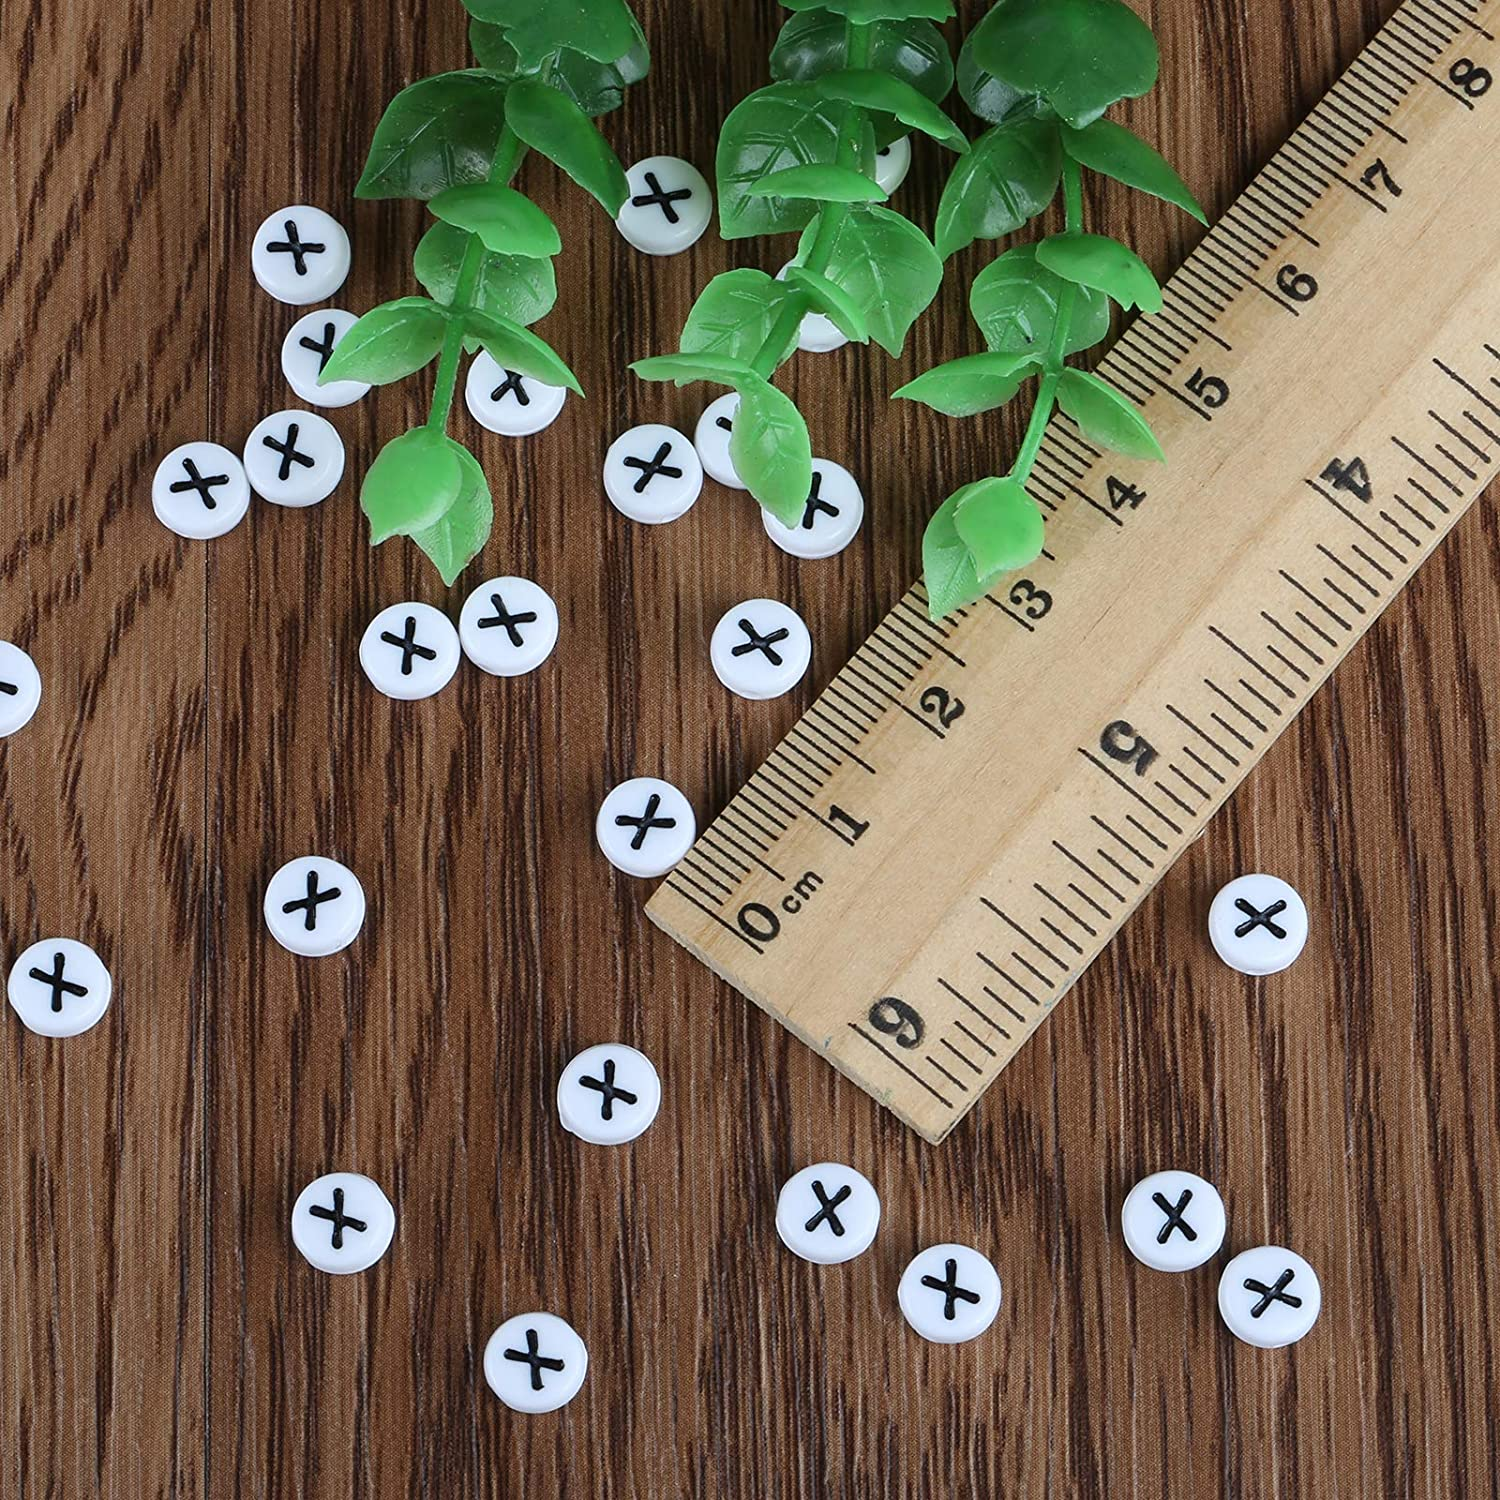 6mm Alphabet Letter Roundd Beads Spacer Bead for Jewelry Making Finding Art Craft DIY Decoration Naler 300pcs Letter Beads B